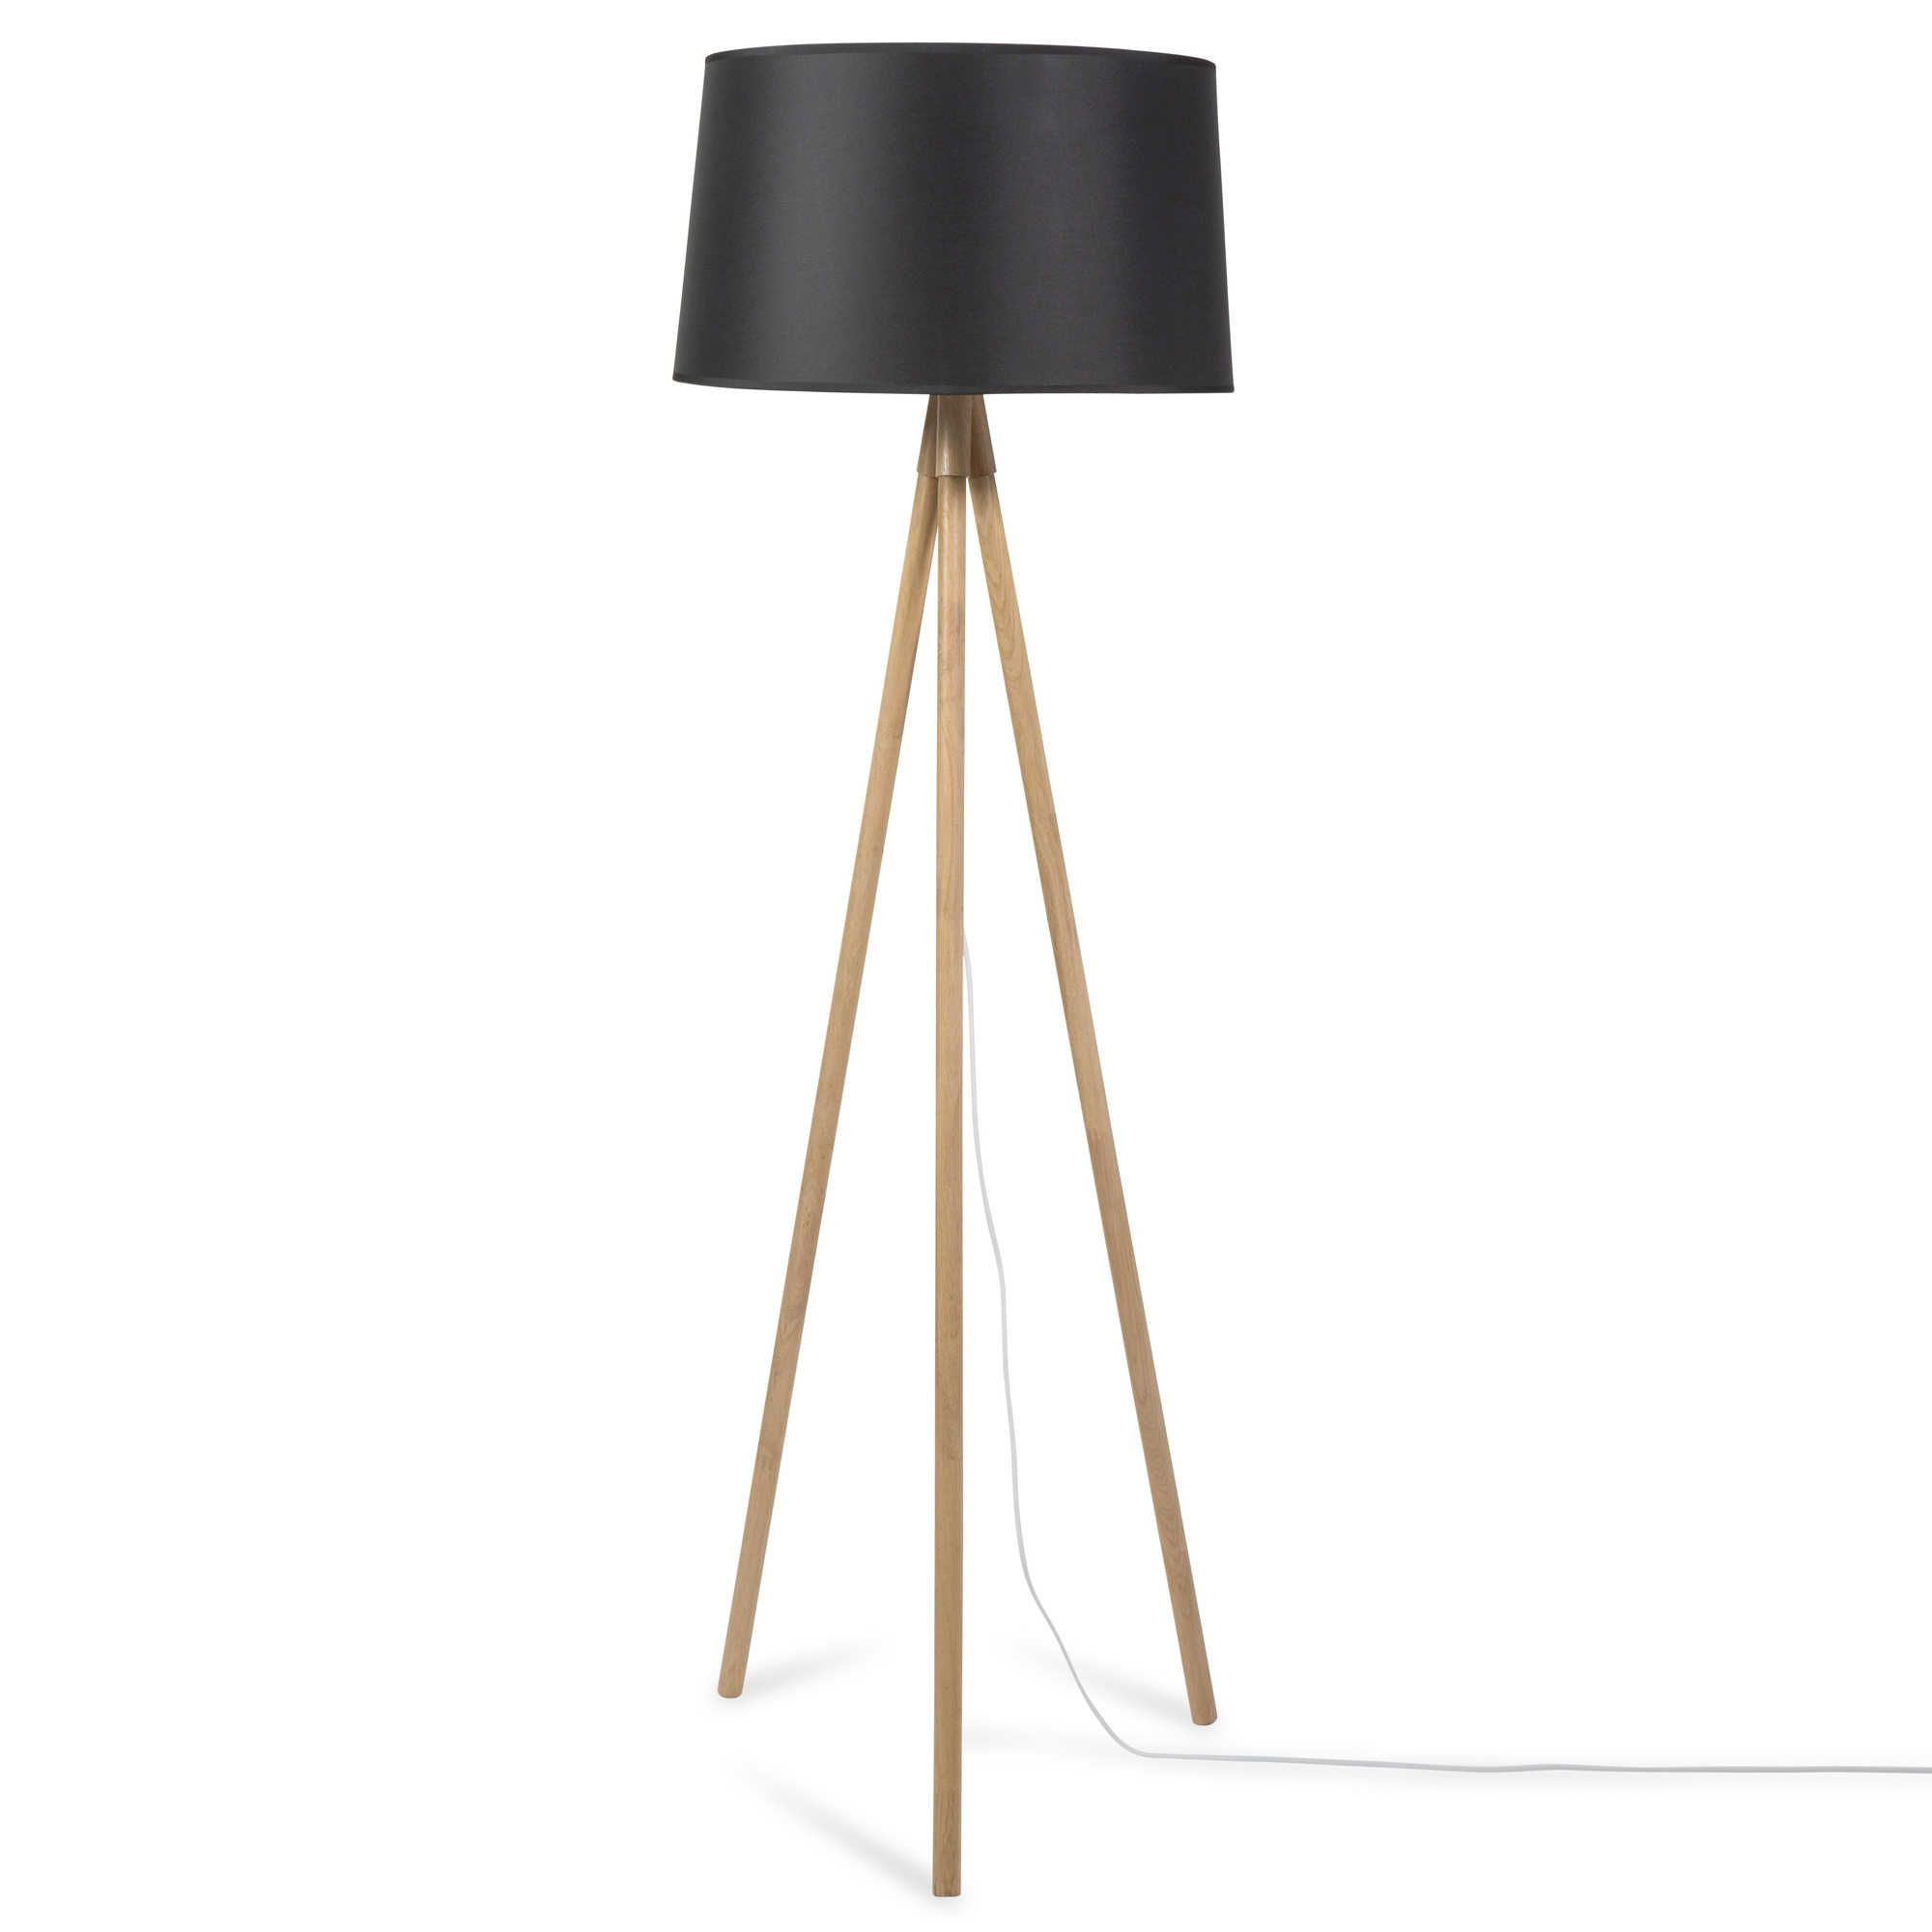 carte cadeau maisons du monde lampadaire tr pied en bois noir h inspi salon s jour. Black Bedroom Furniture Sets. Home Design Ideas